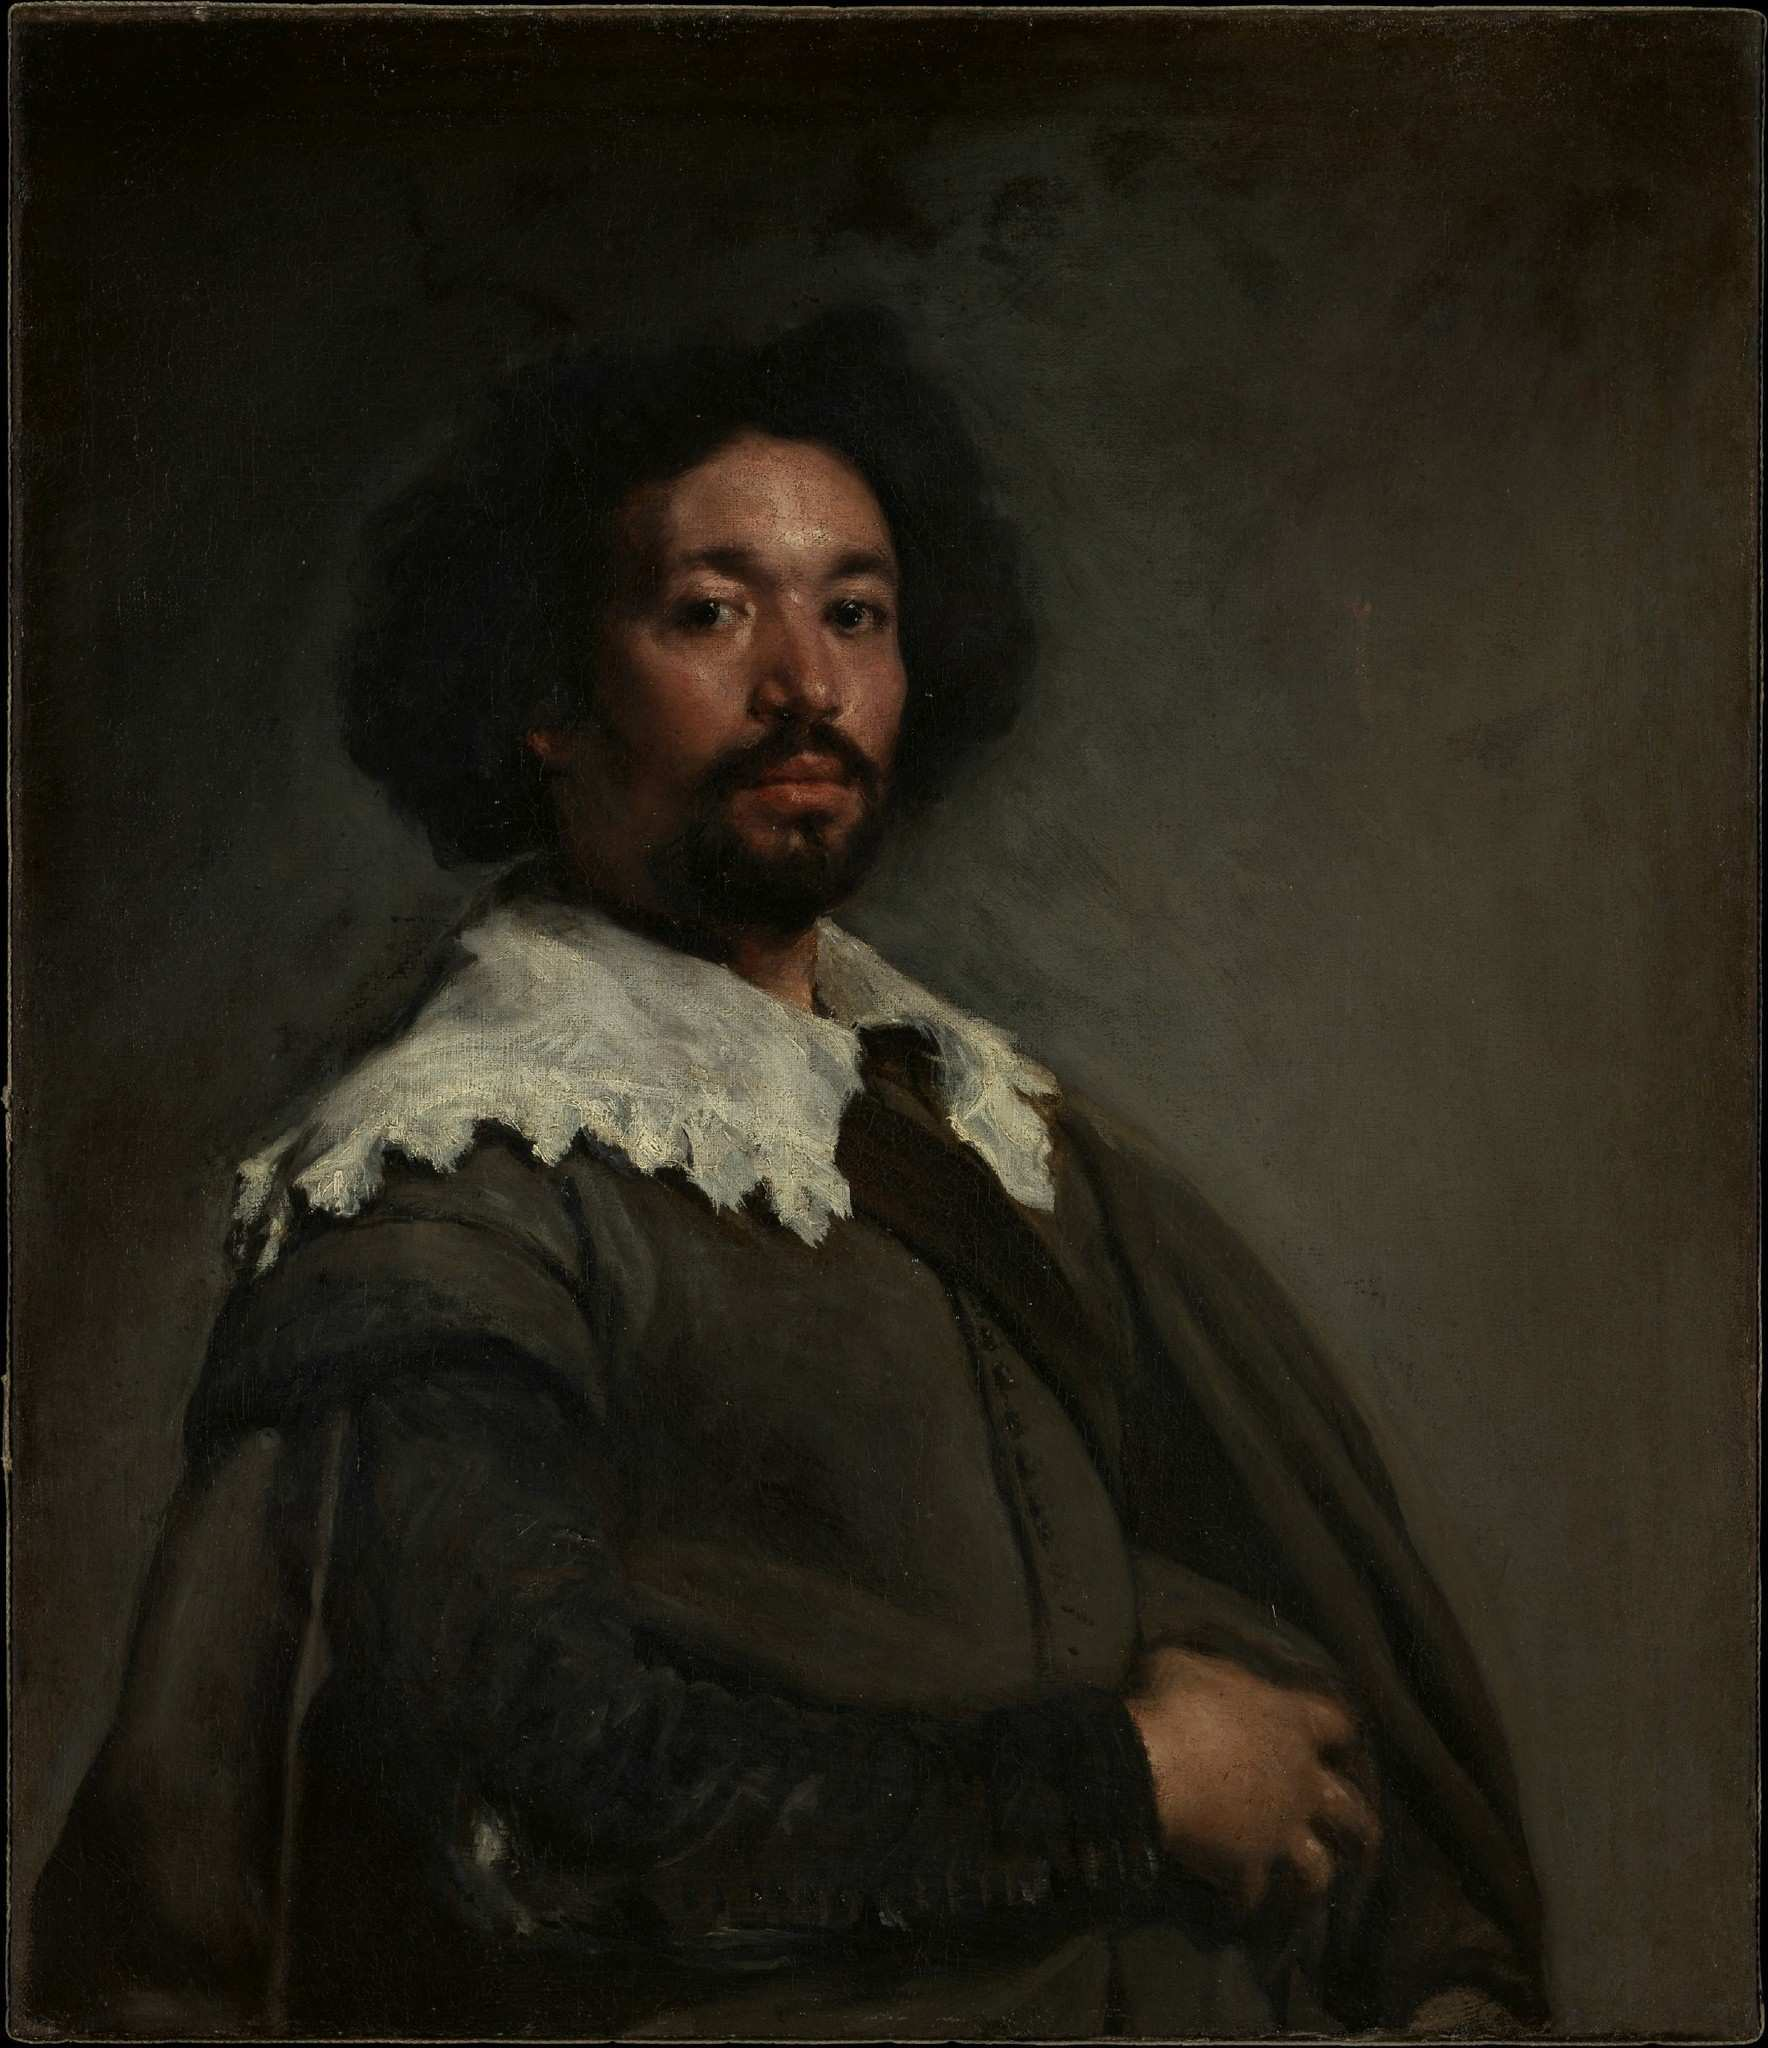 Sotheby s Master Paintings Evening Sale to offer paintings spanning